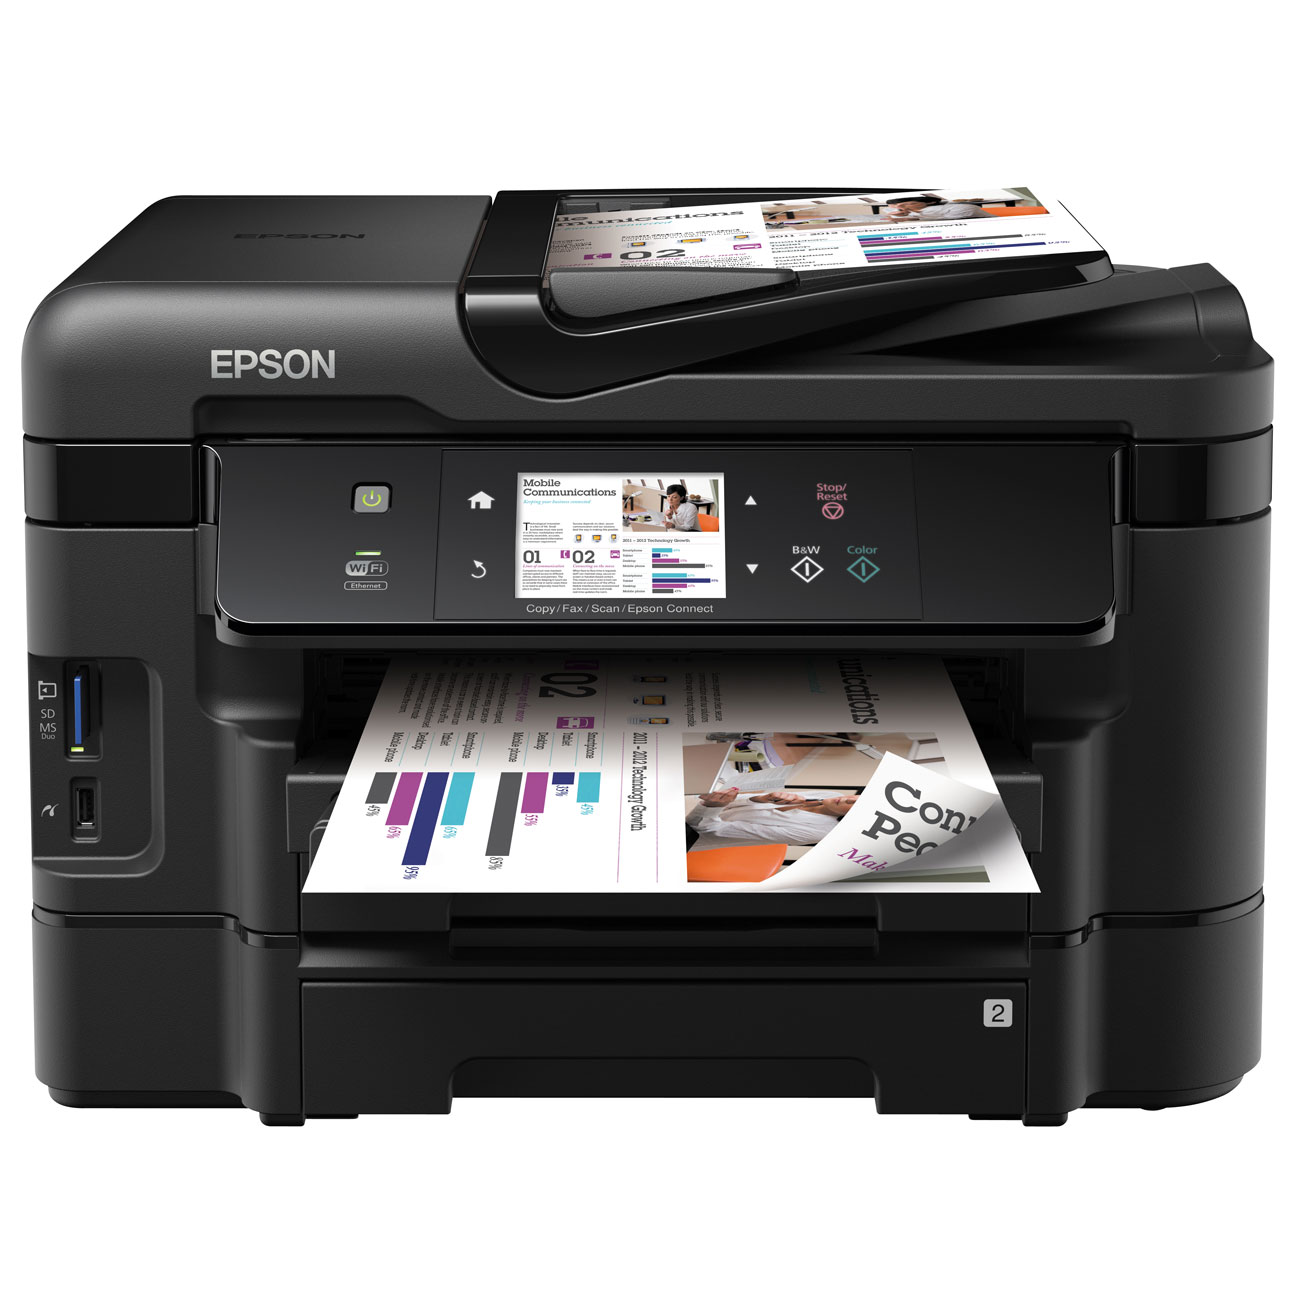 epson workforce wf 3540dtwf imprimante multifonction. Black Bedroom Furniture Sets. Home Design Ideas